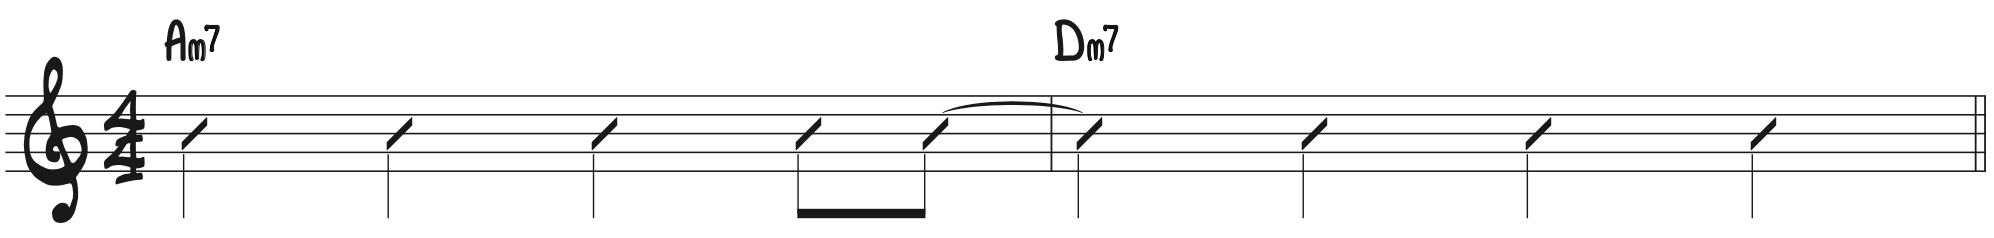 Rhythmic notation anticipating the downbeat swing convention